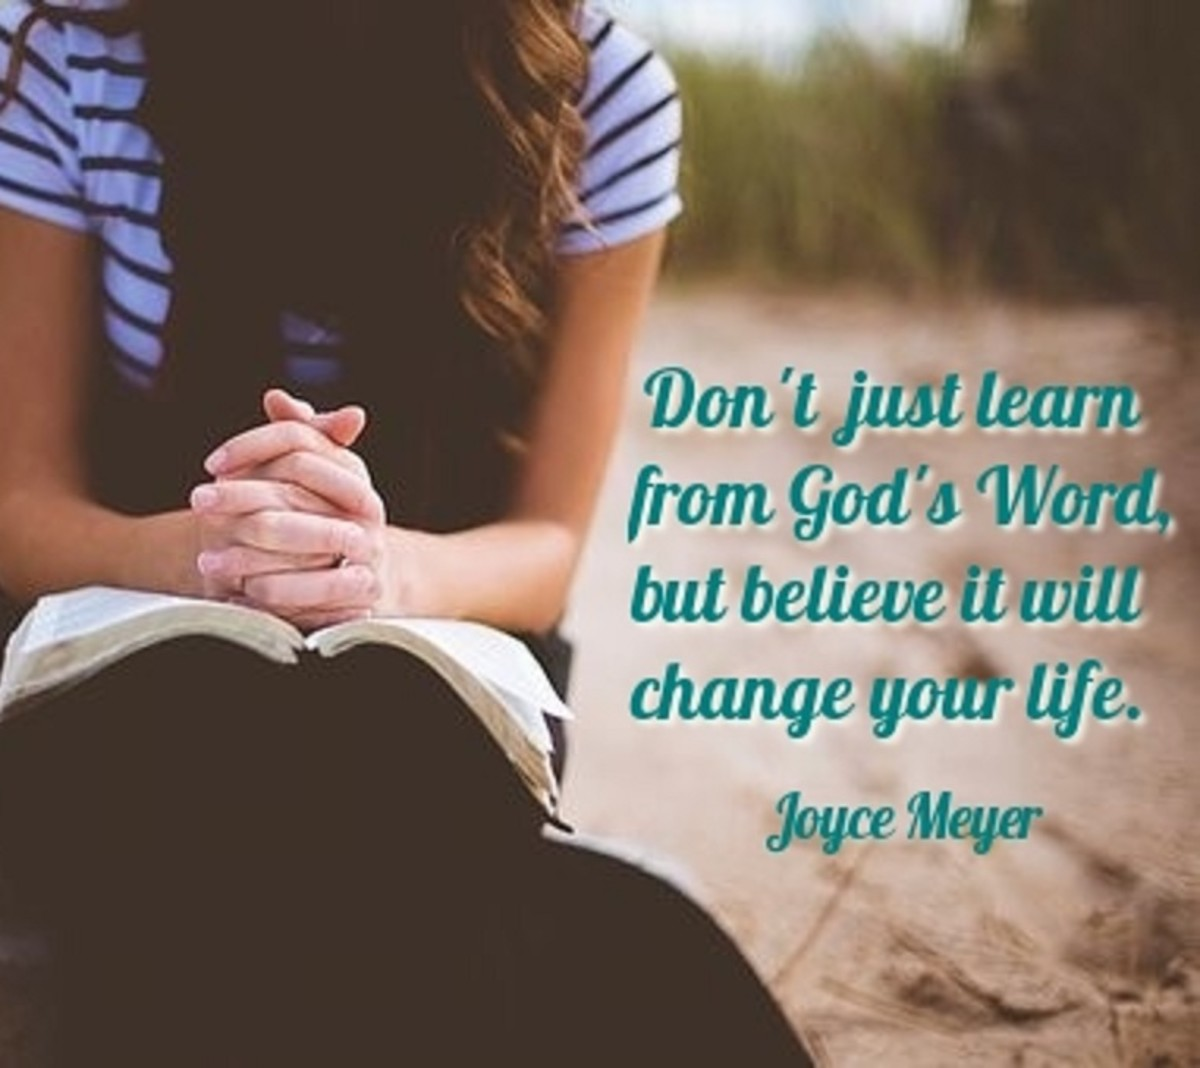 Don't just learn from God's Word, but believe it will change your life.